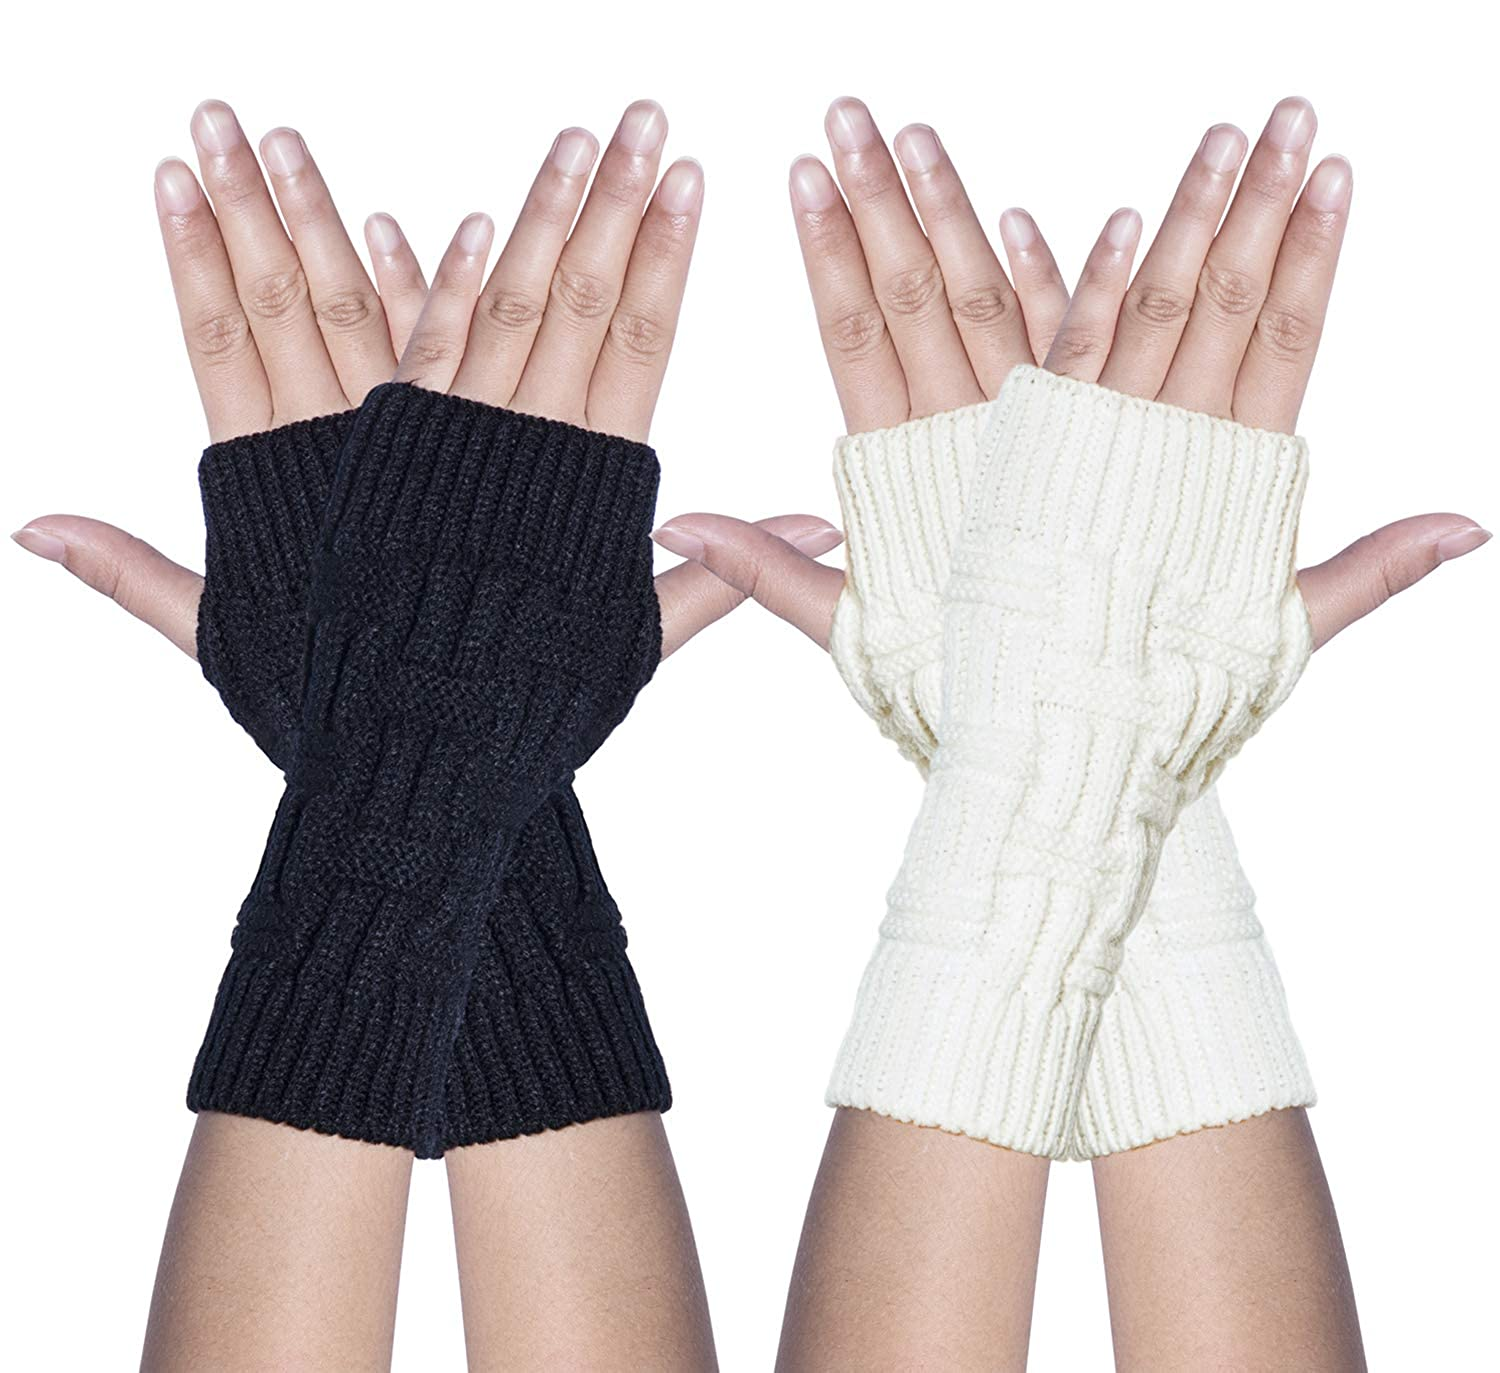 Loritta 2 Pairs Women Winter Warm Fingerless Gloves Crochet Thumbhole Knit Wrist Warmers ACS-148-1